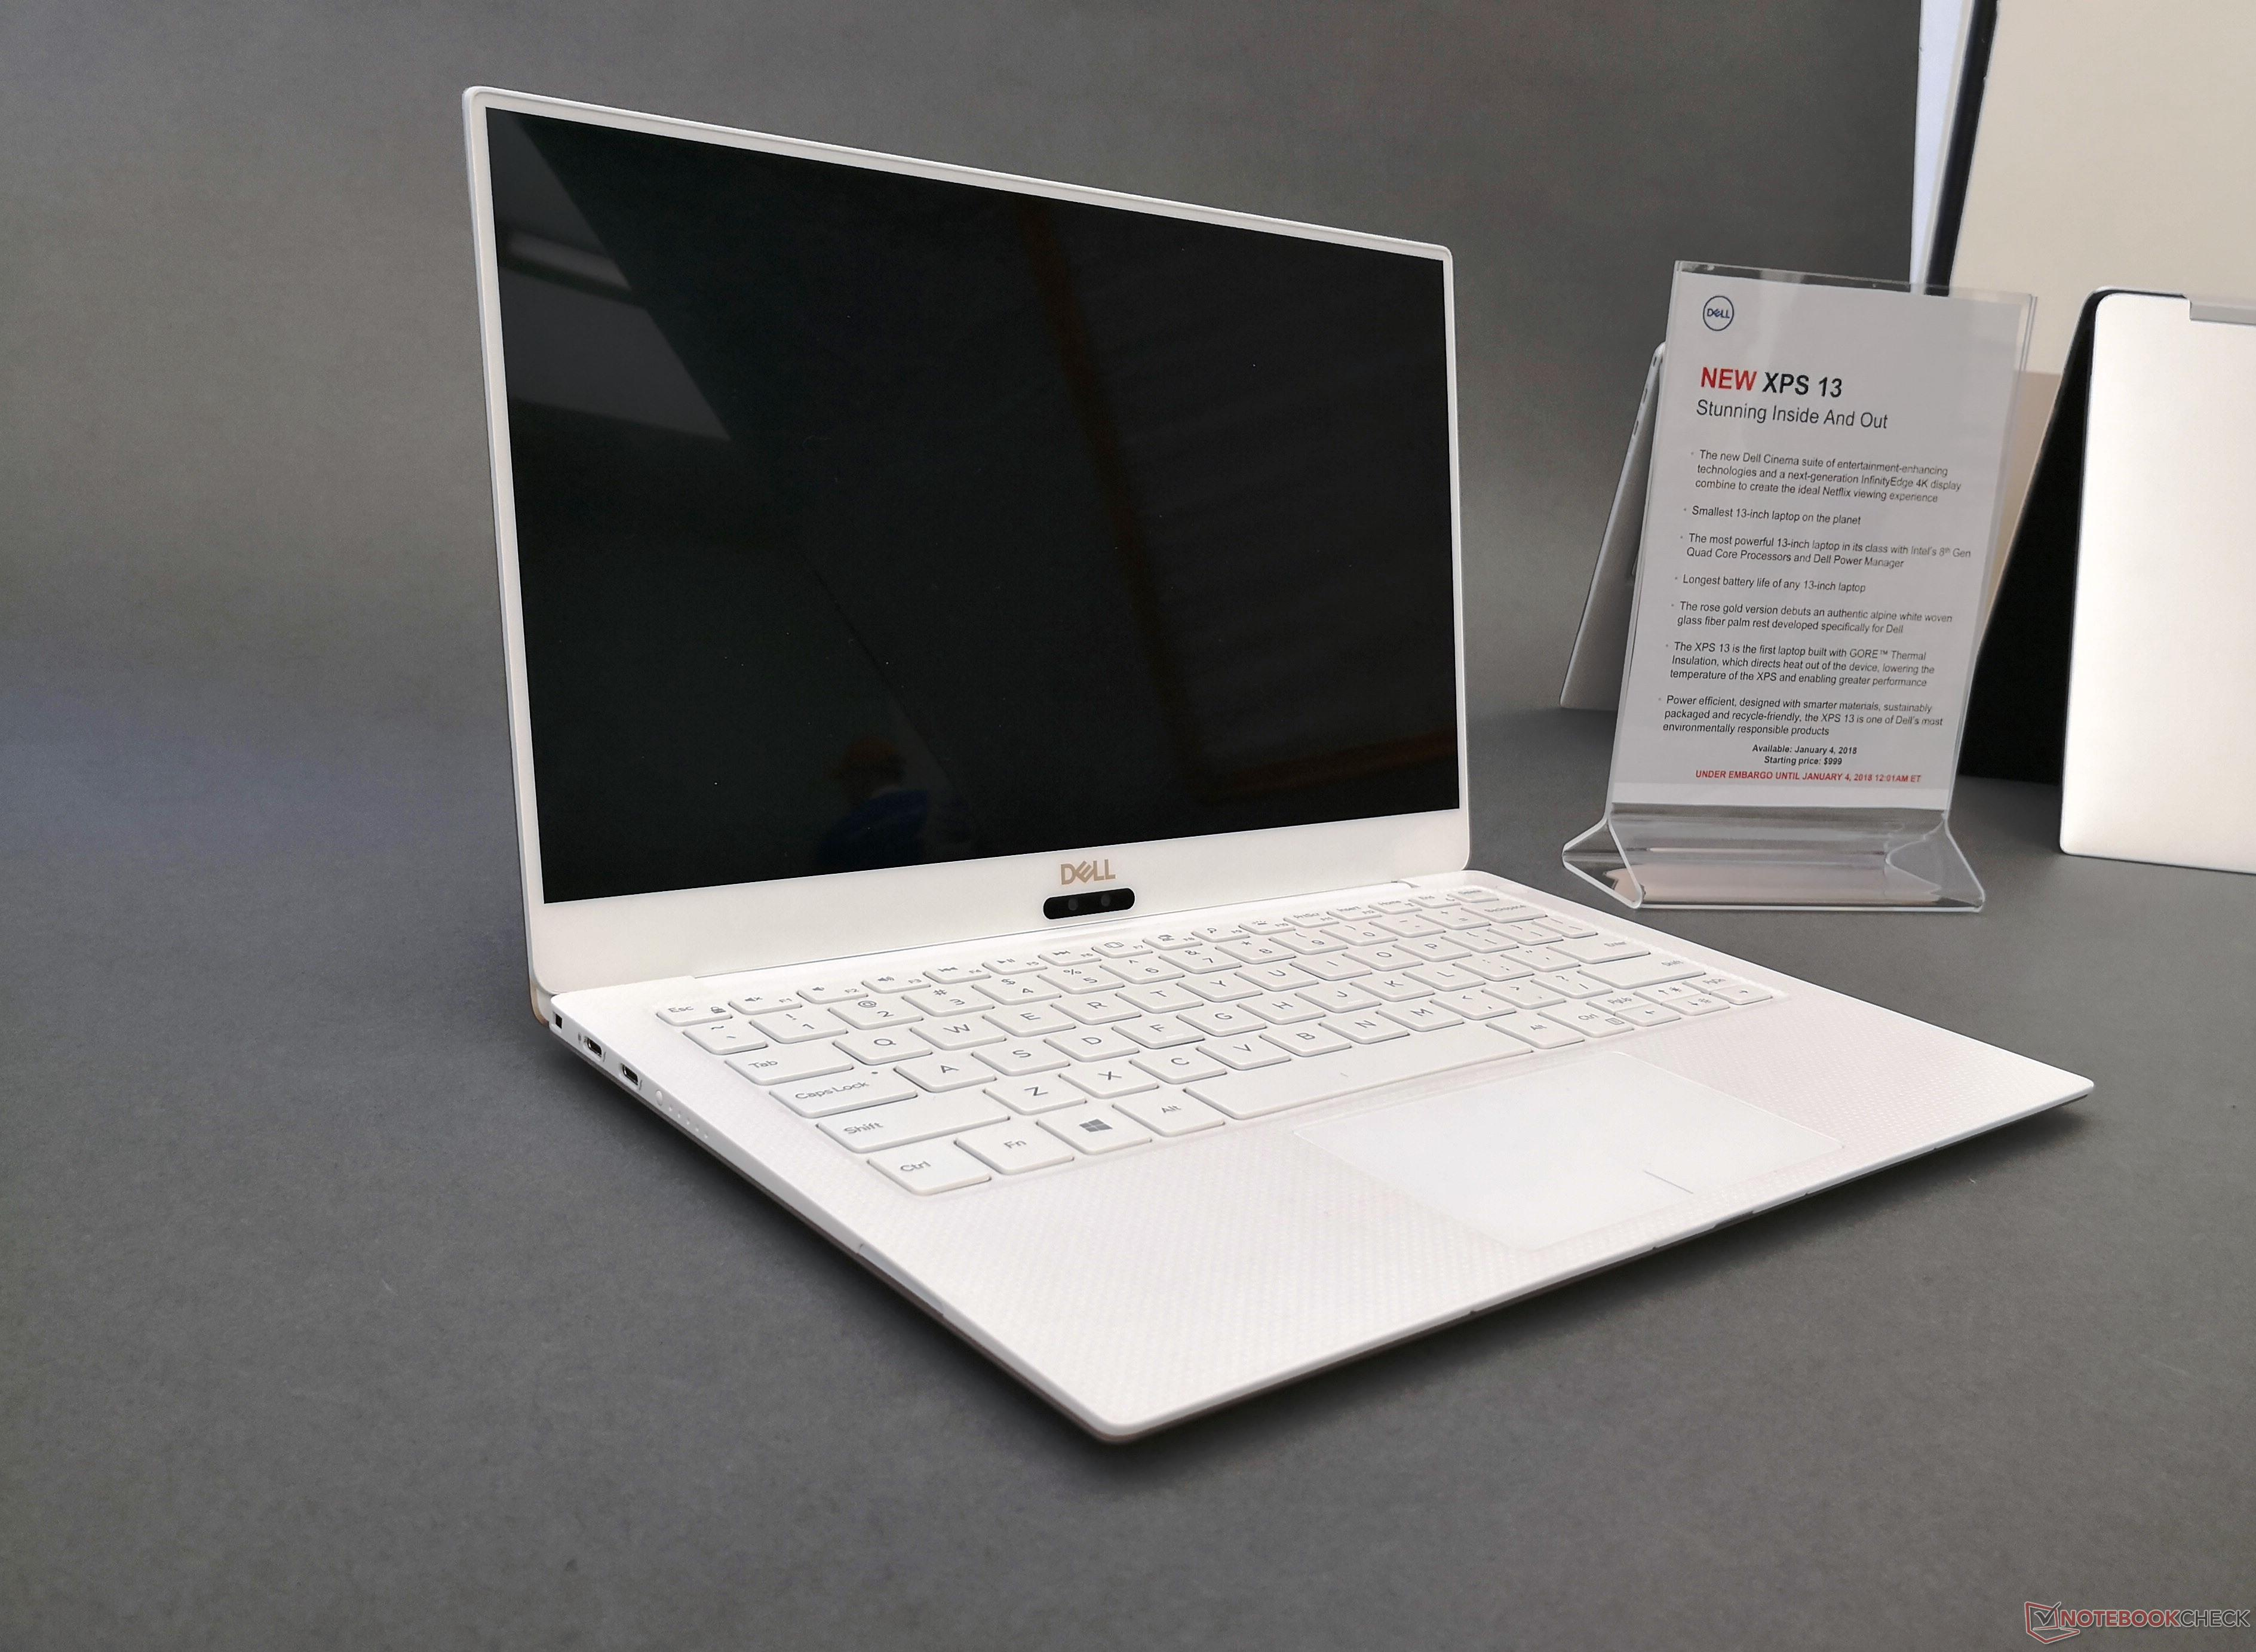 93d61e435c8 The Dell XPS 13 9370 is the full refresh we've been waiting for -  NotebookCheck.net News